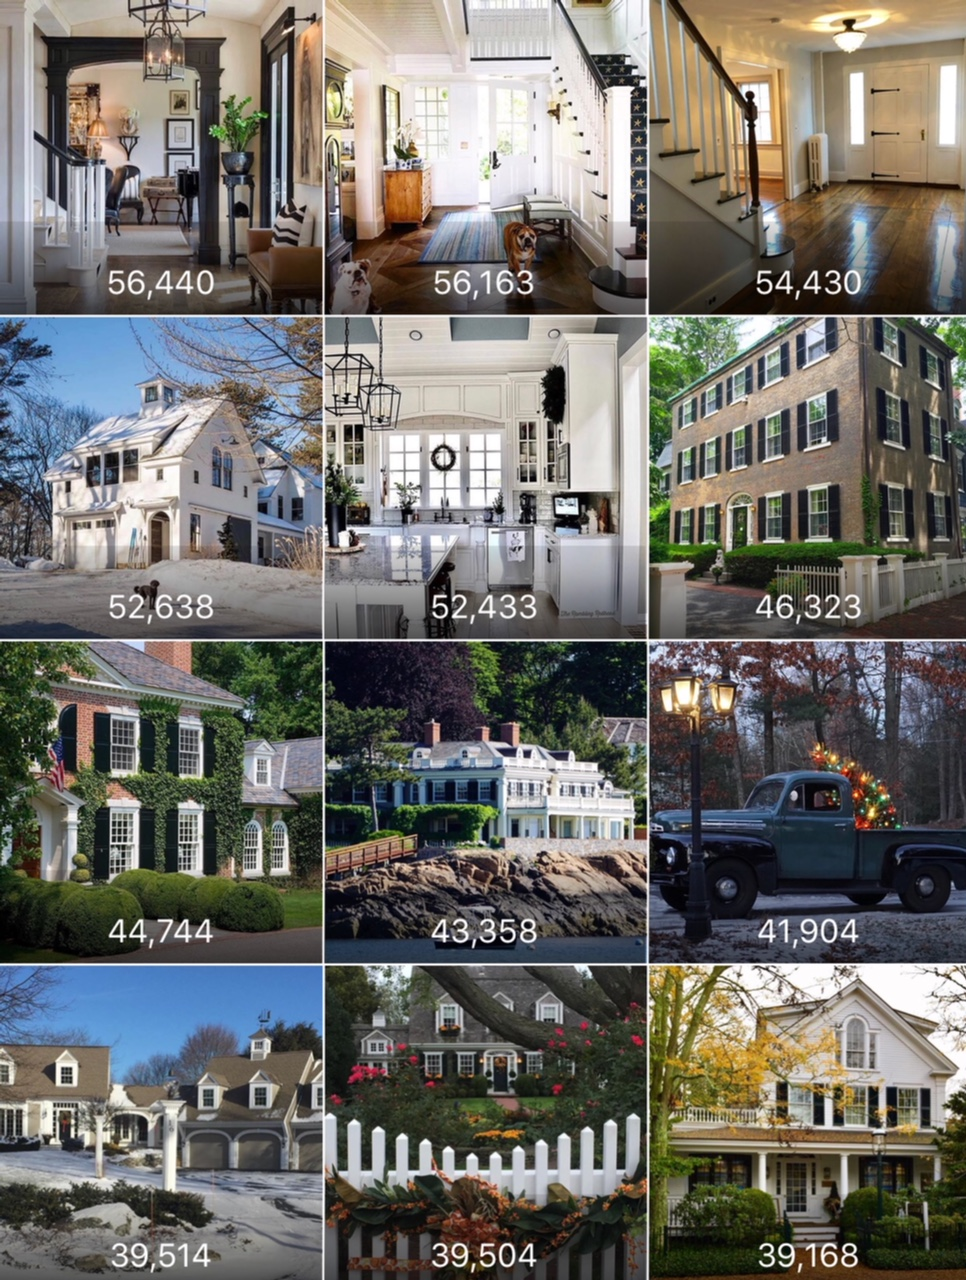 Your antique or luxury historic home could be listed here and/or on our social feeds! - Contact us to find out more.